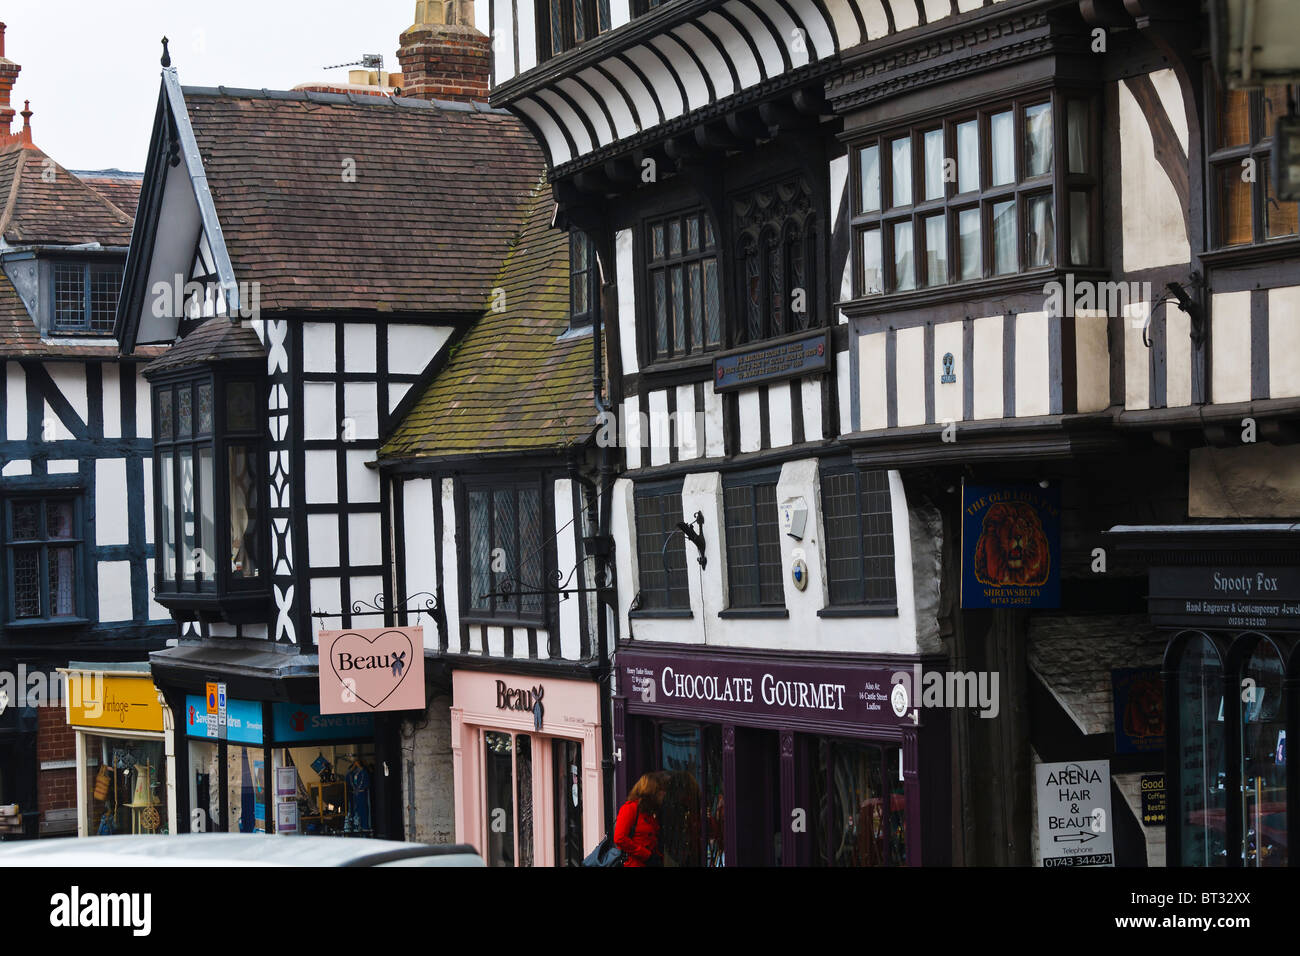 Henry Tudor House and half timbered buildings in Wyle Cop, Shrewsbury, Shropshire. - Stock Image